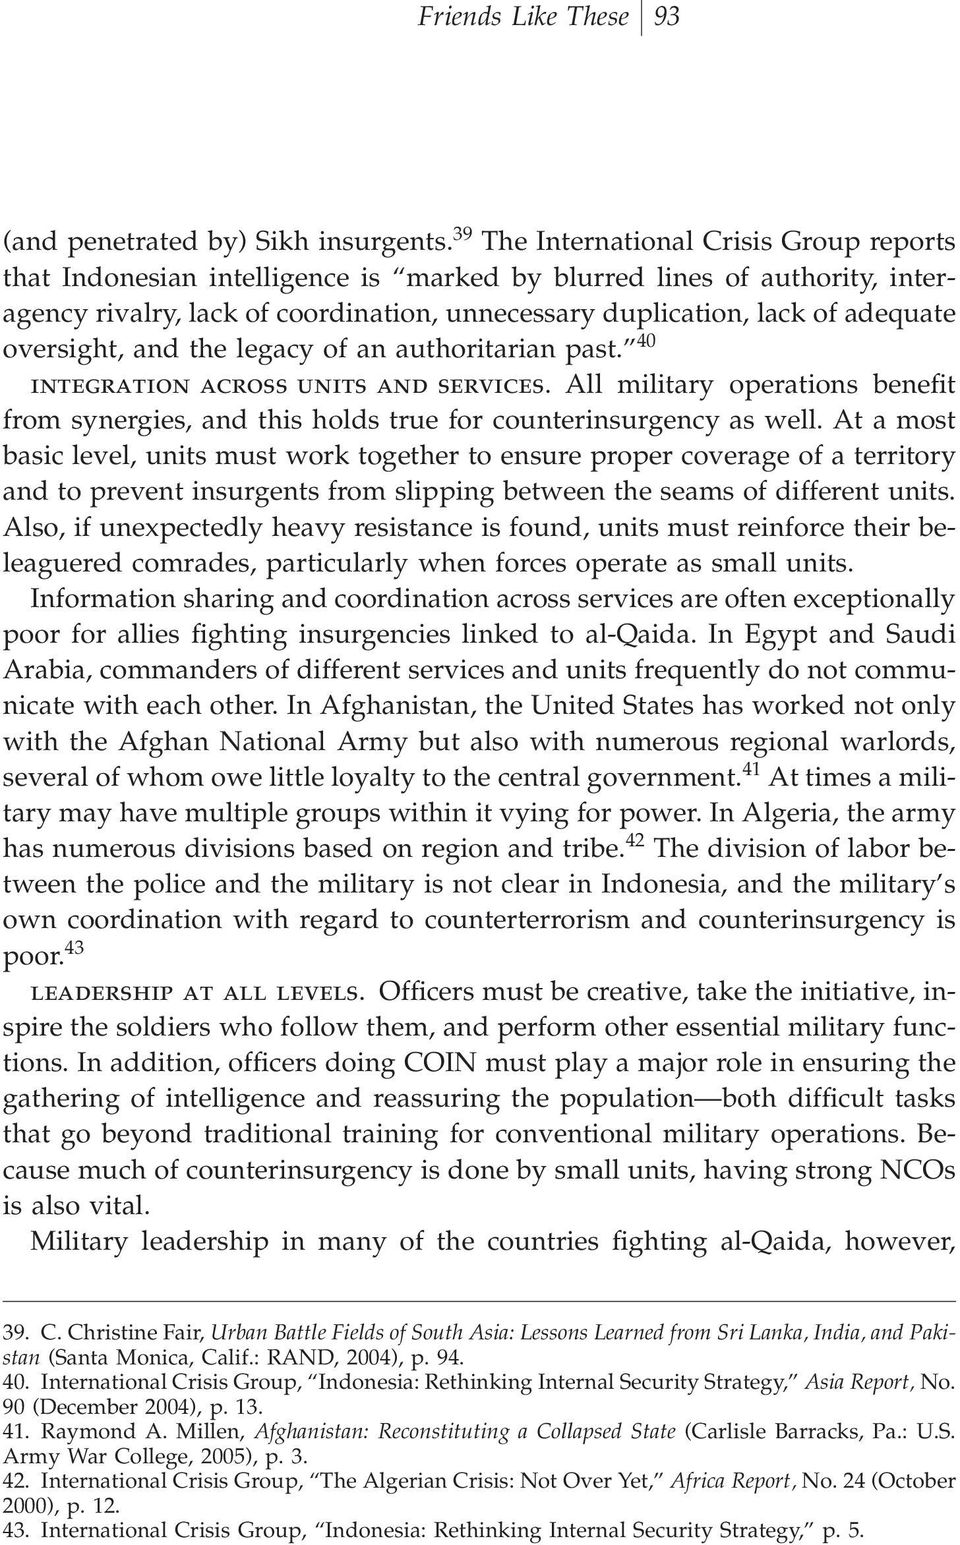 oversight, and the legacy of an authoritarian past. 40 integration across units and services. All military operations beneªt from synergies, and this holds true for counterinsurgency as well.